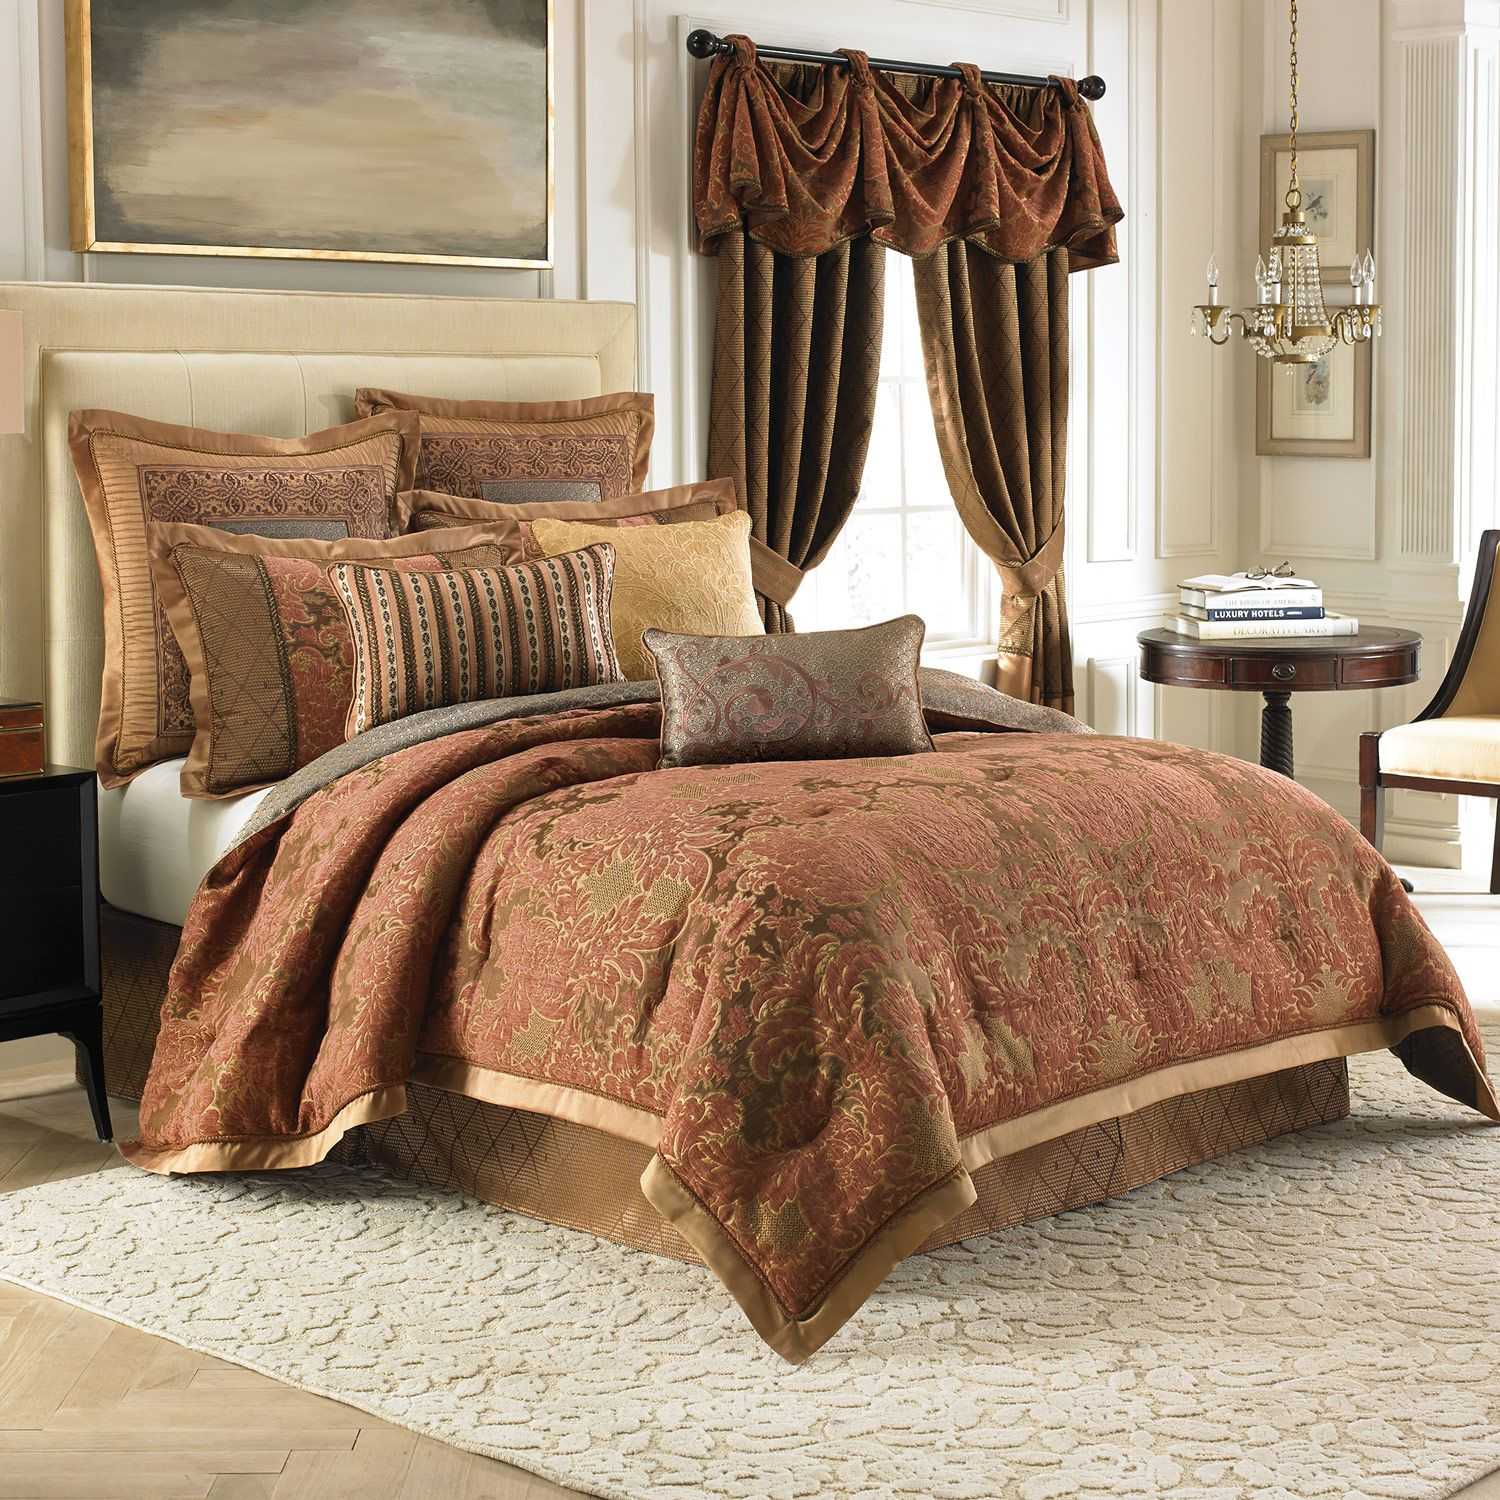 Charming Comforters Sets For Bedroom Design With Queen Comforter Sets